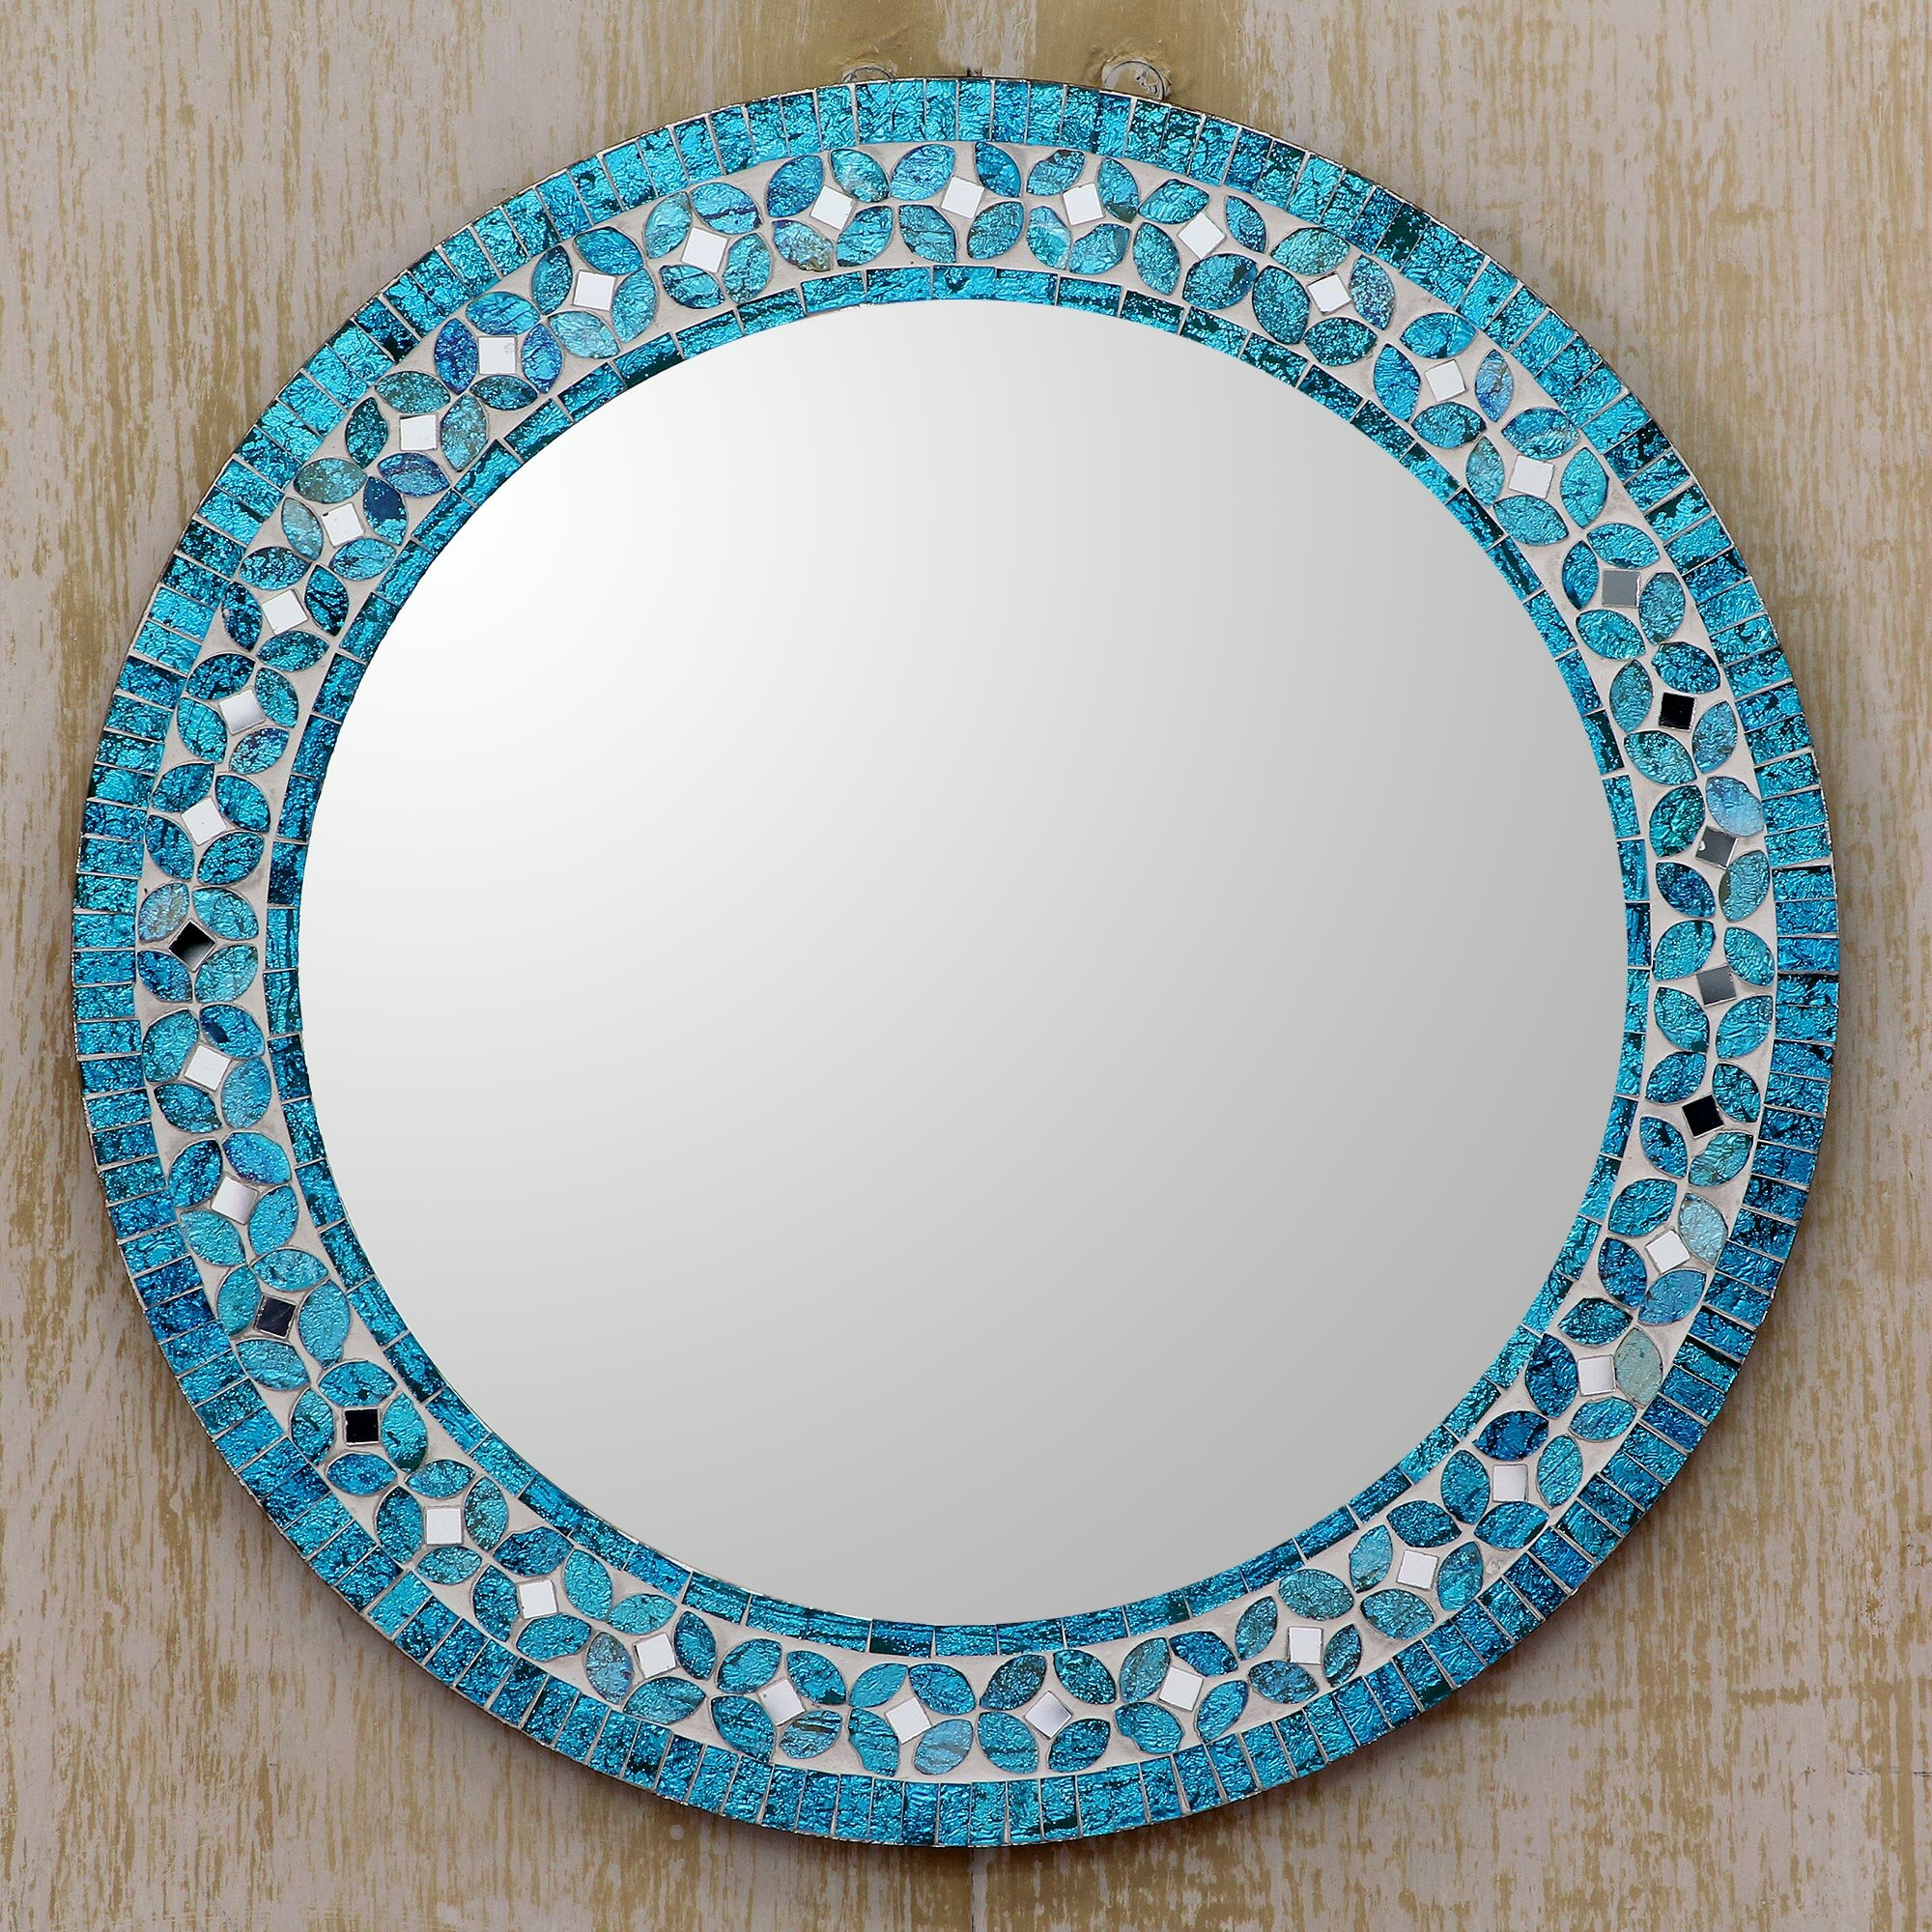 Novica Round Flower Motif Glass Mosaic Tile Wall Mirror